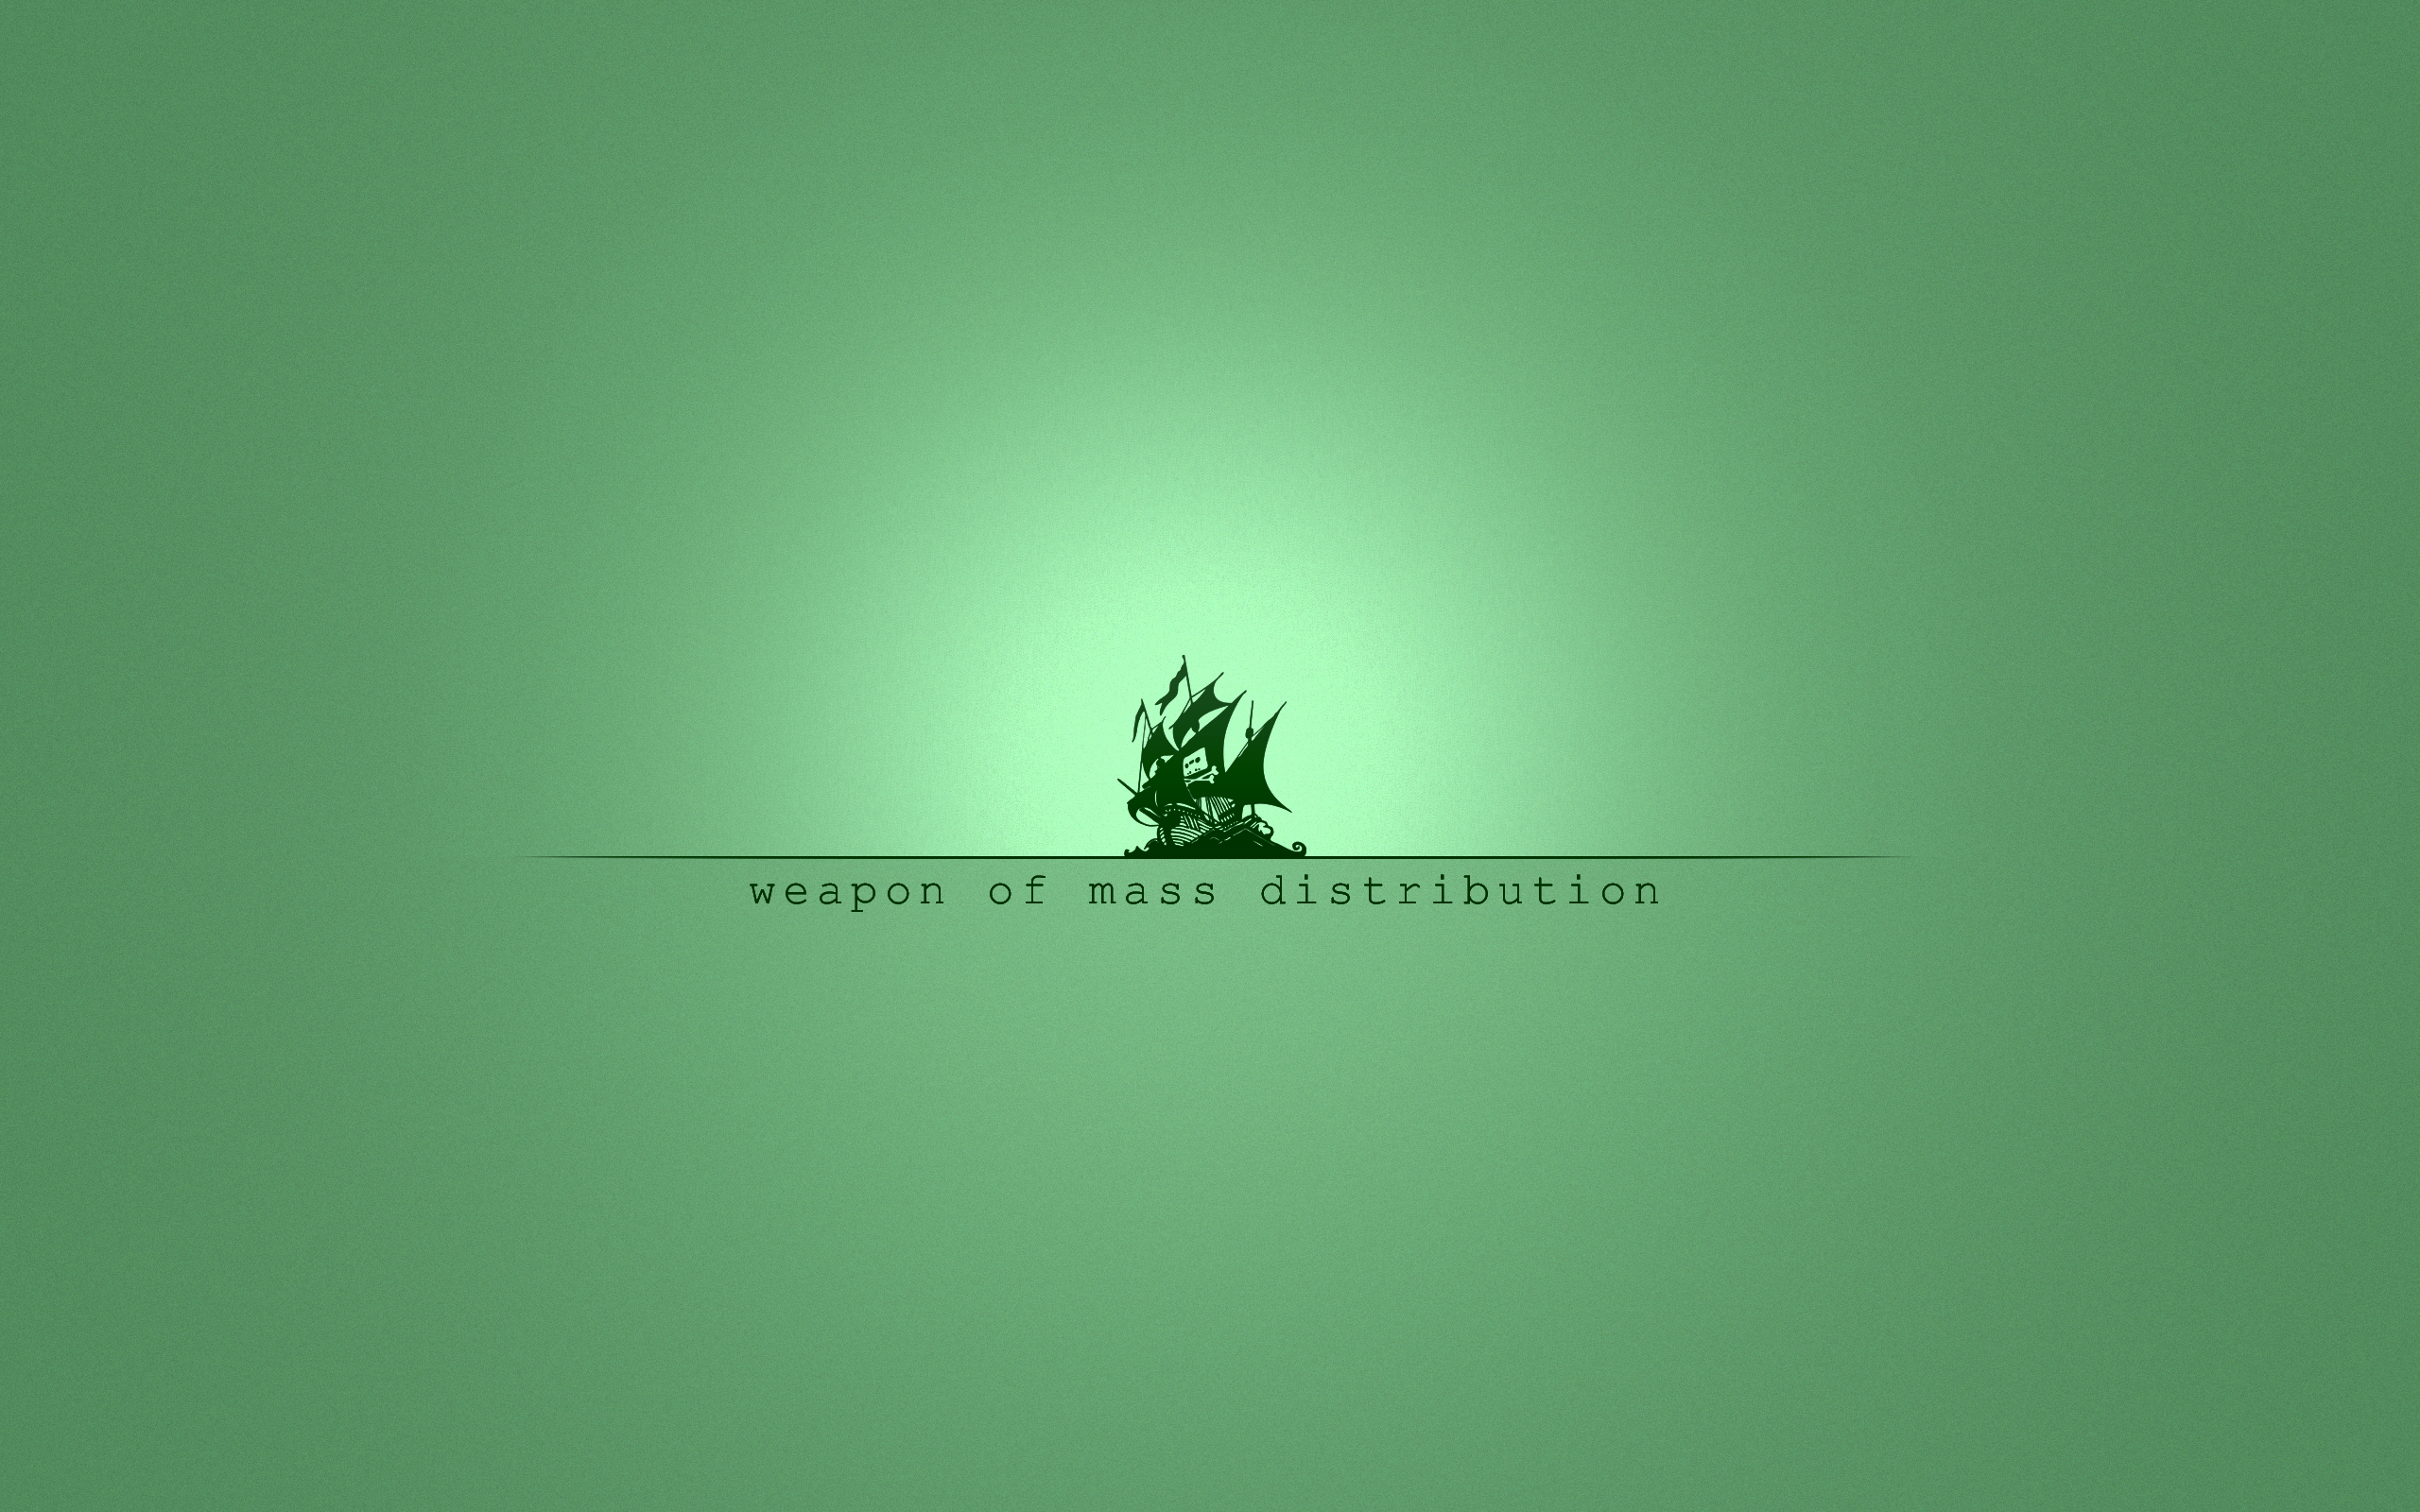 the pirate bay weapons of mass distribution full hd